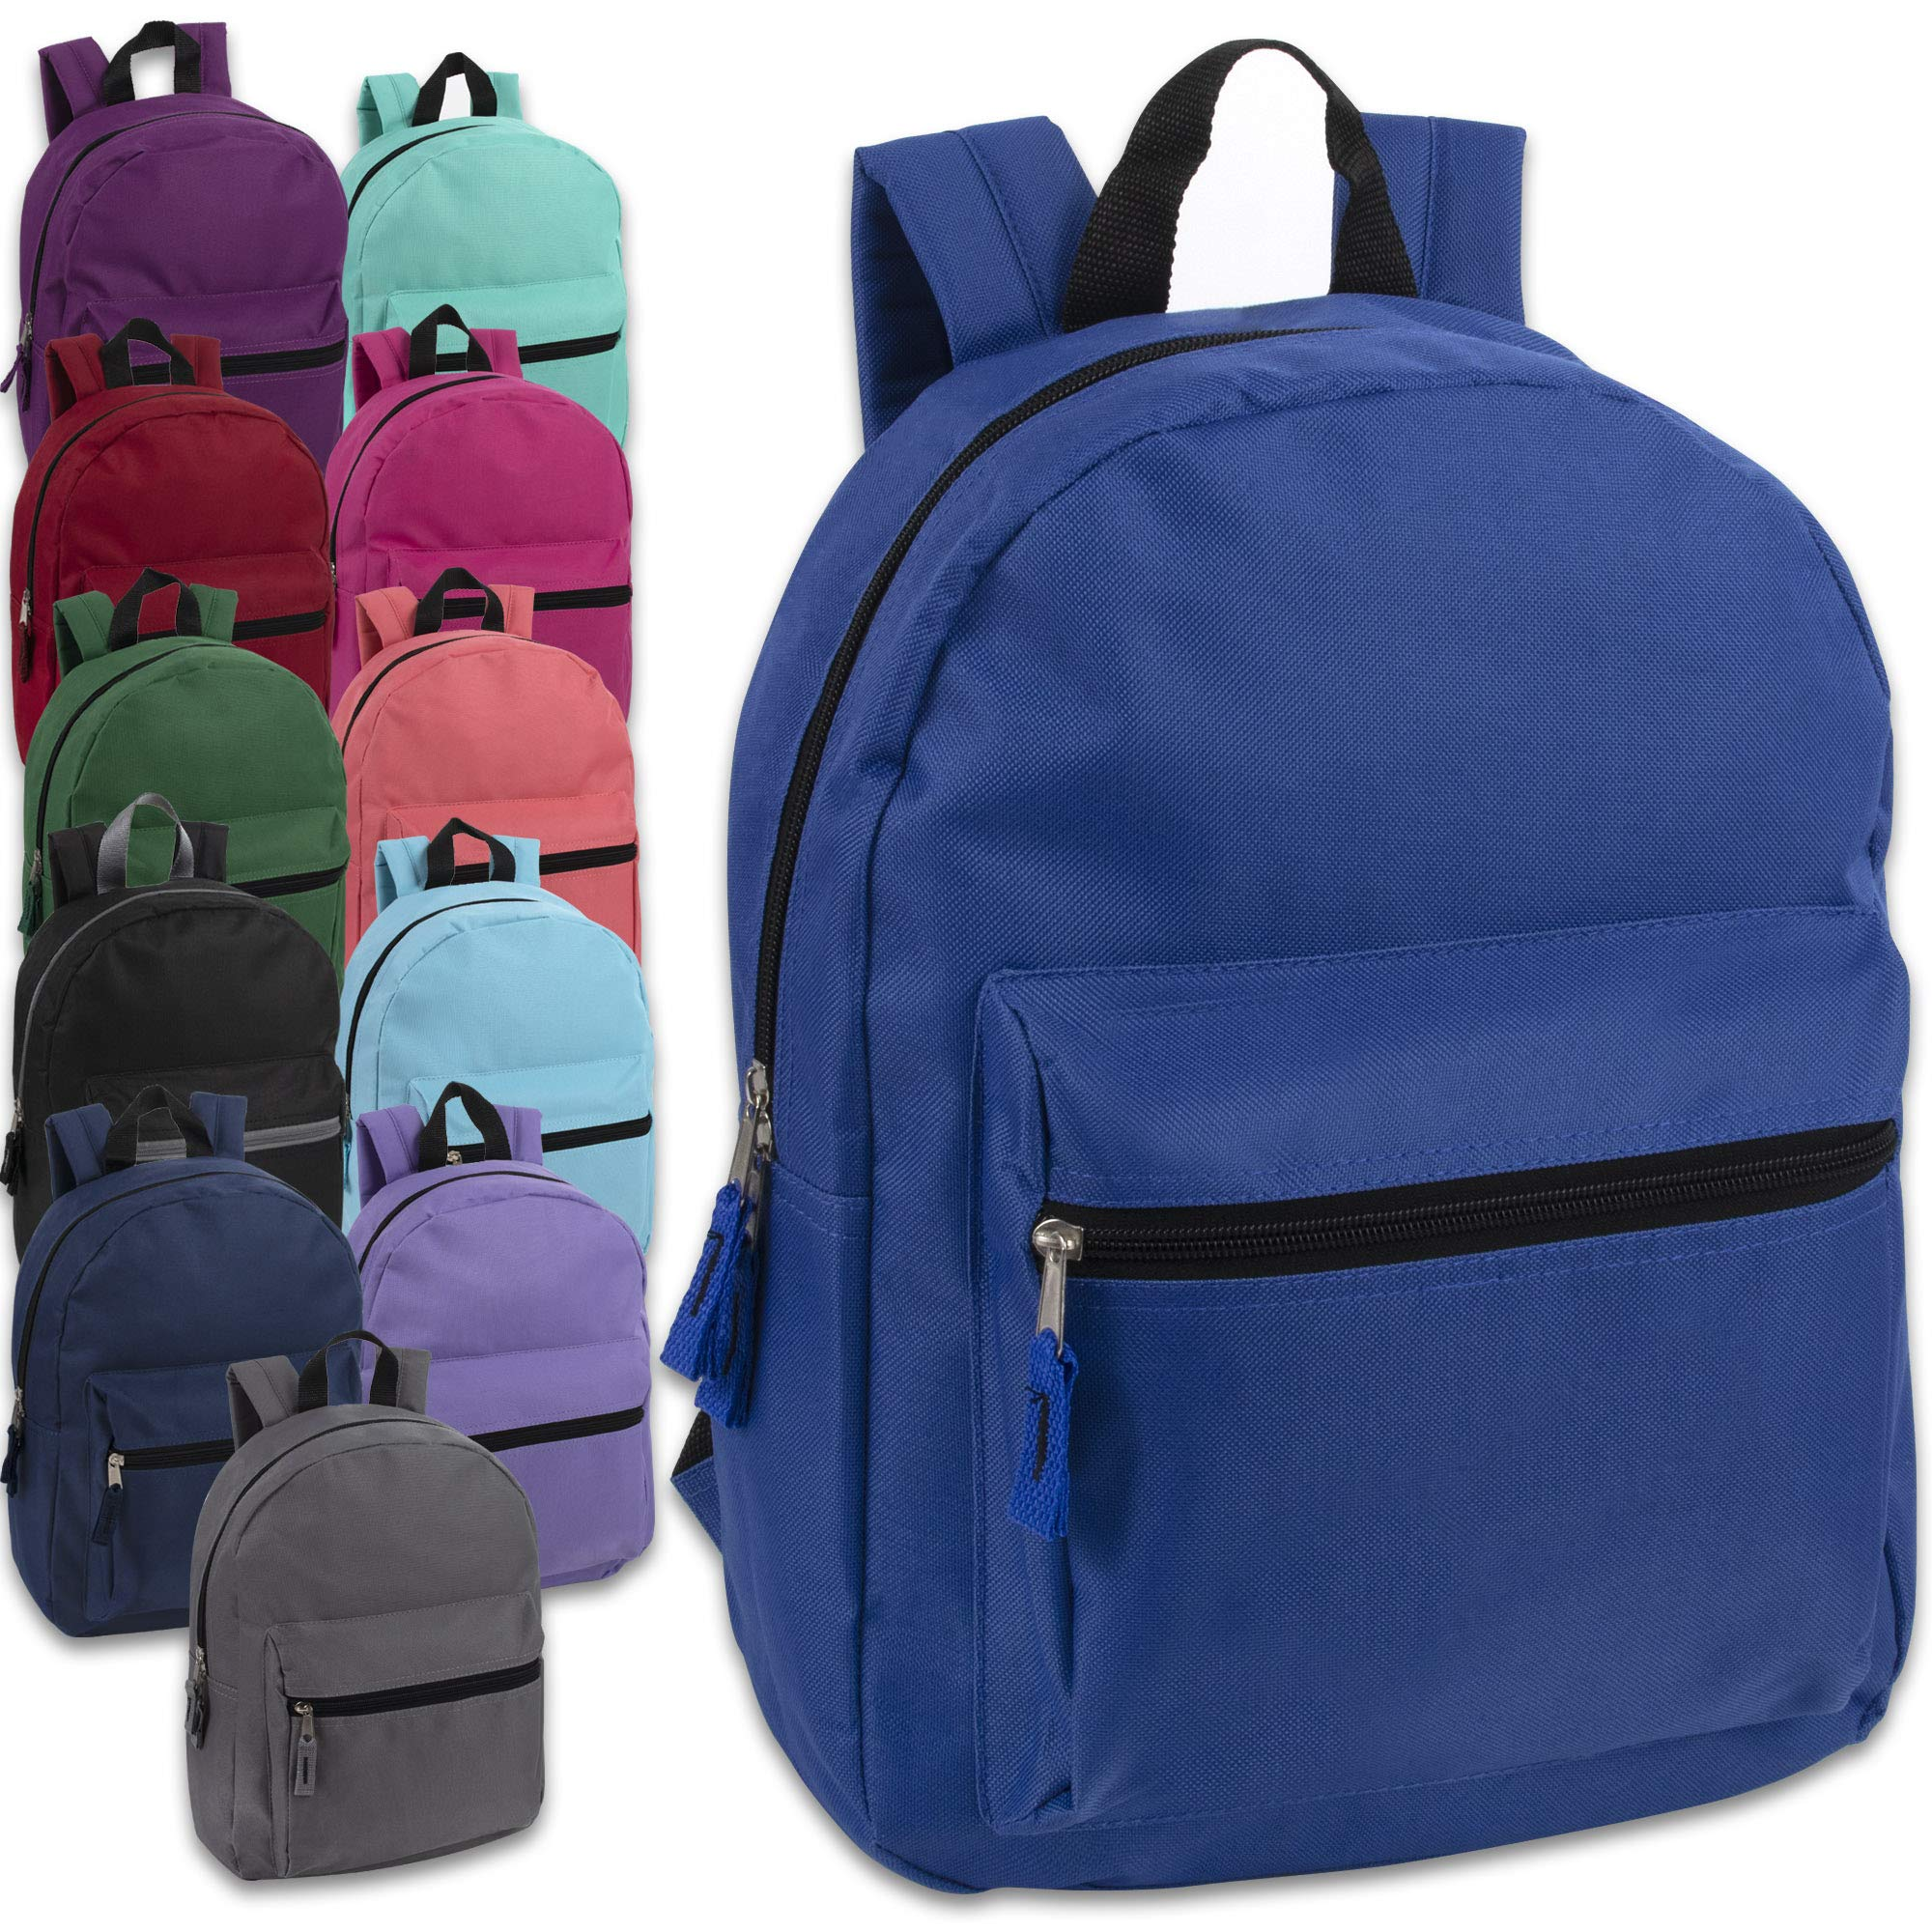 15 Inch Solid Backpacks For Kids With Padded Straps, Wholesale Bulk Case Pack Of 24 (12 Color Assortment) by Trail maker